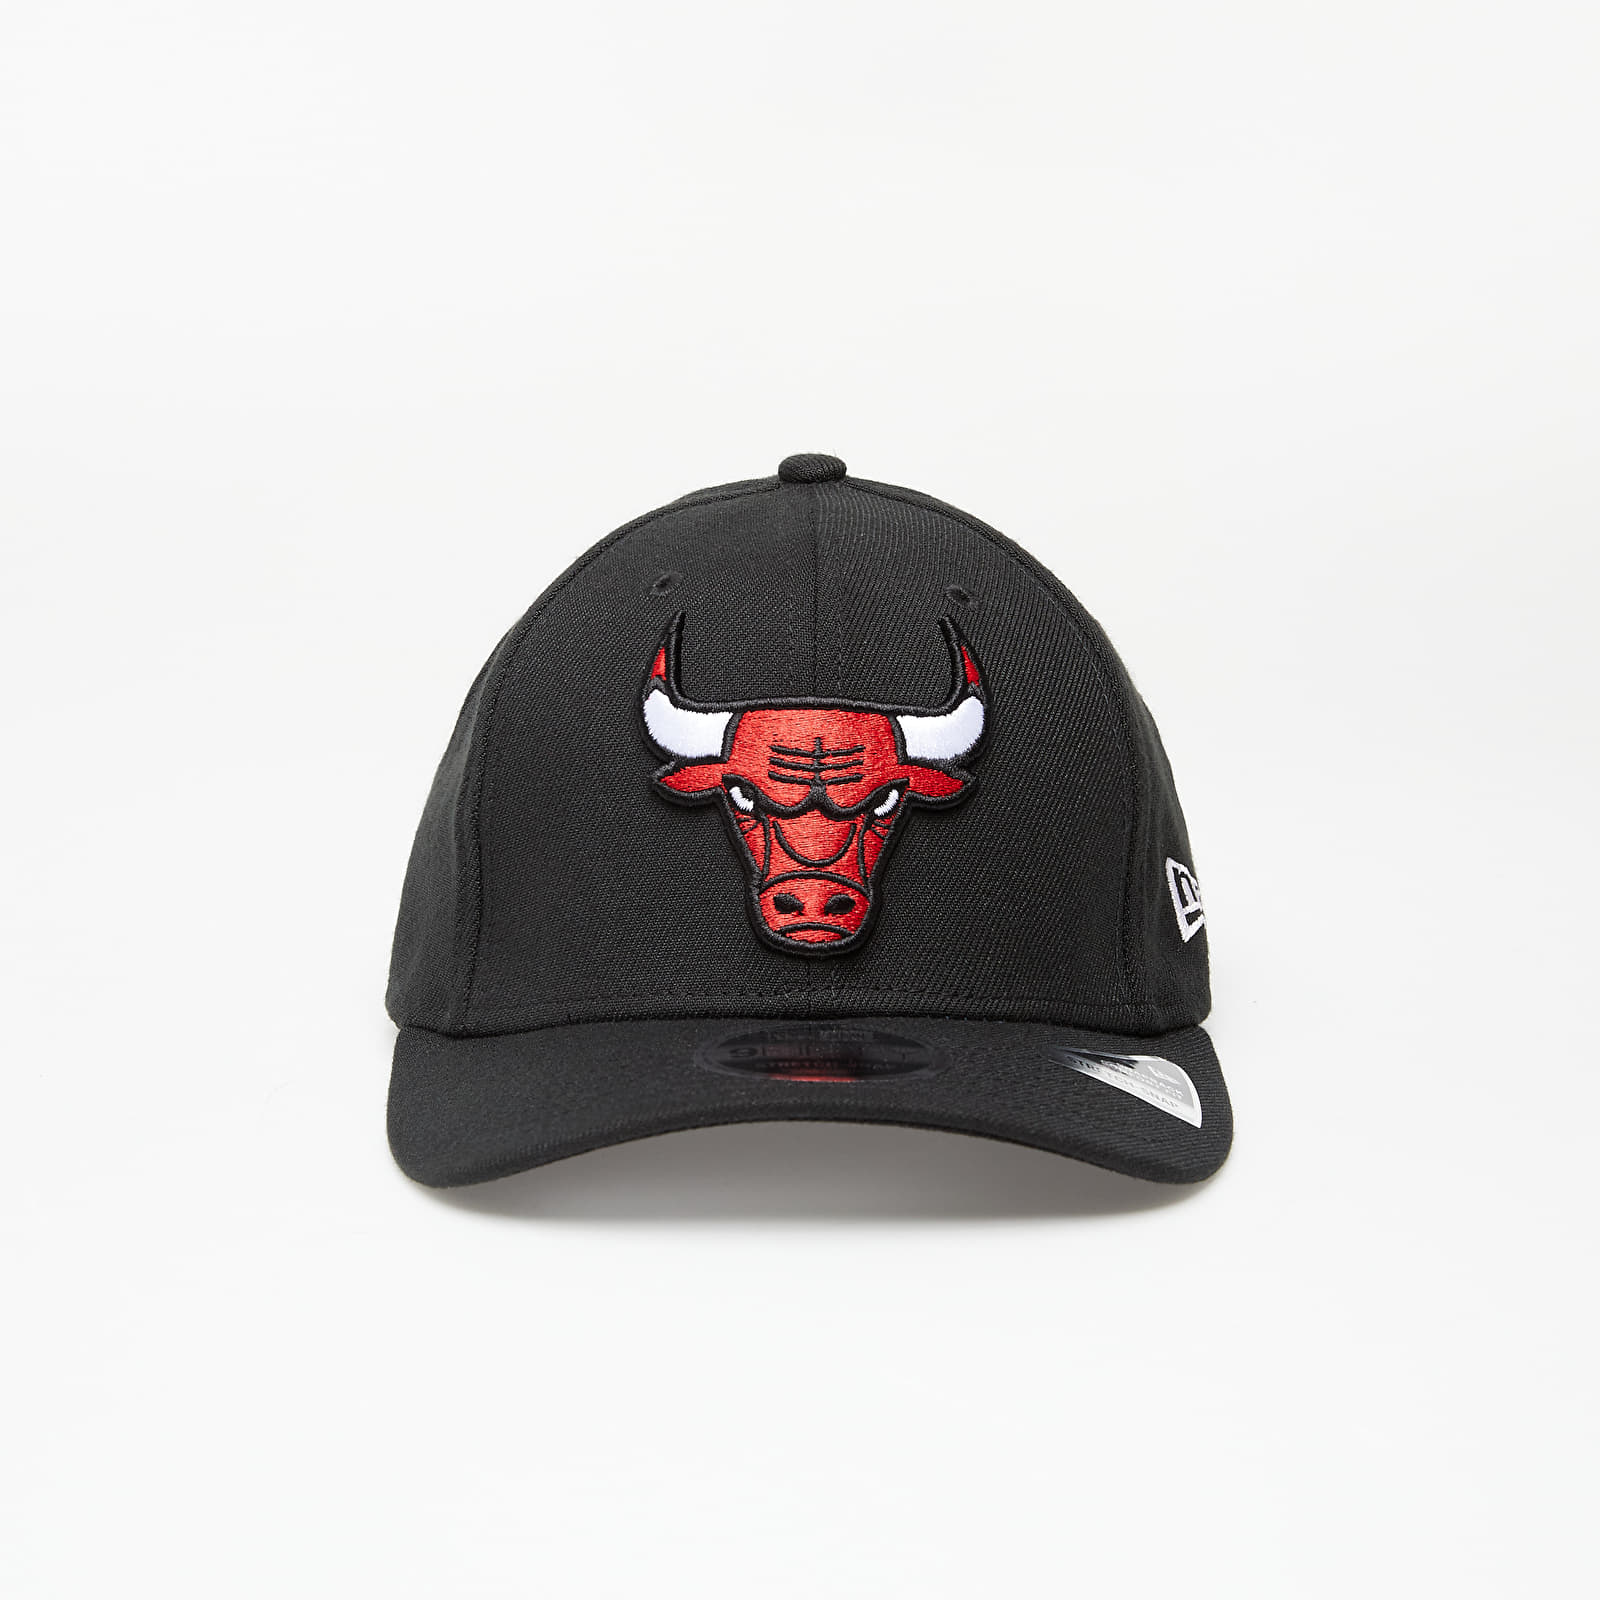 Caps New Era Cap 9Fifty Nba Stretch Snap Chicago Bulls Blackotc